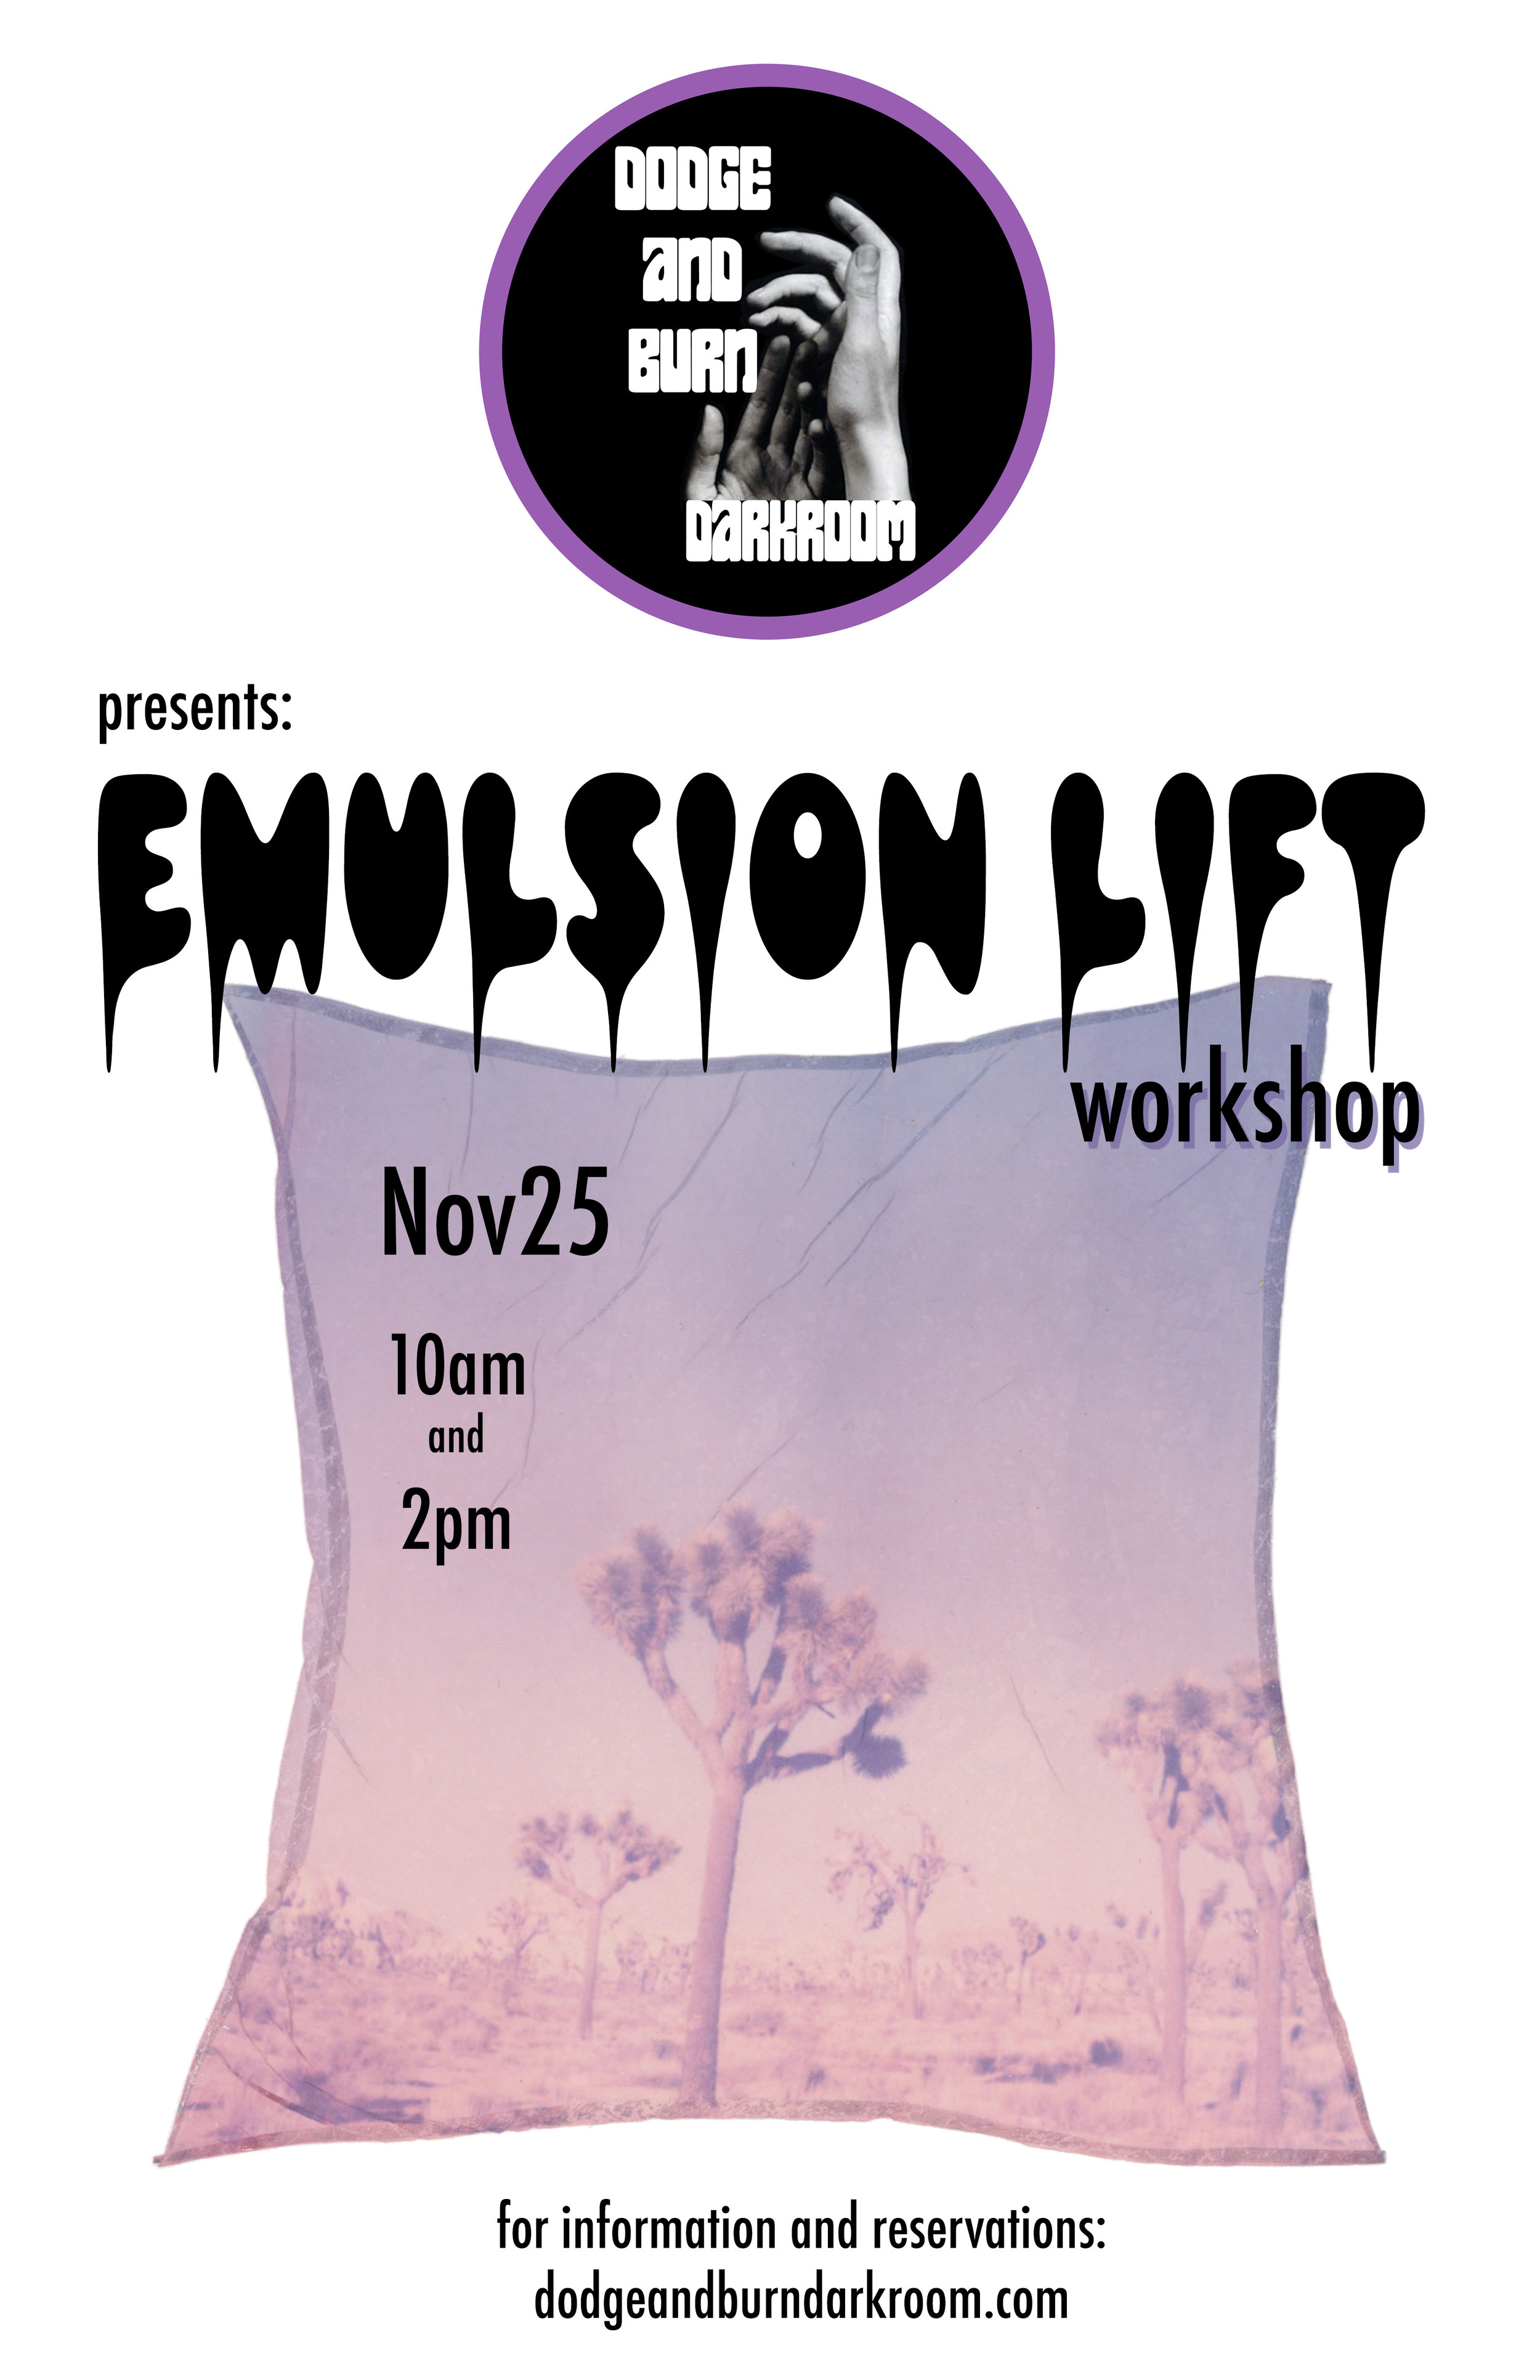 - November 25, 2018An emulsion lift (or emulsion transfer) is when the emulsion layer is removed from a sheet of instant film and then transferred to a different surface.Instructor: Carly ValentineLocation: Dodge and Burn DarkroomMaterials: 2 polaroids, paint brushes, scissors, watercolor paper. All materials will be provided.We'll meet at the darkroom and take a quick trip to shoot the images you'll use for the workshop. When we return we'll take the polaroids apart and begin the process of removing the emulsion. Your final images will be applied to the watercolor paper.Fee: $20SPACES ARE VERY LIMITED!